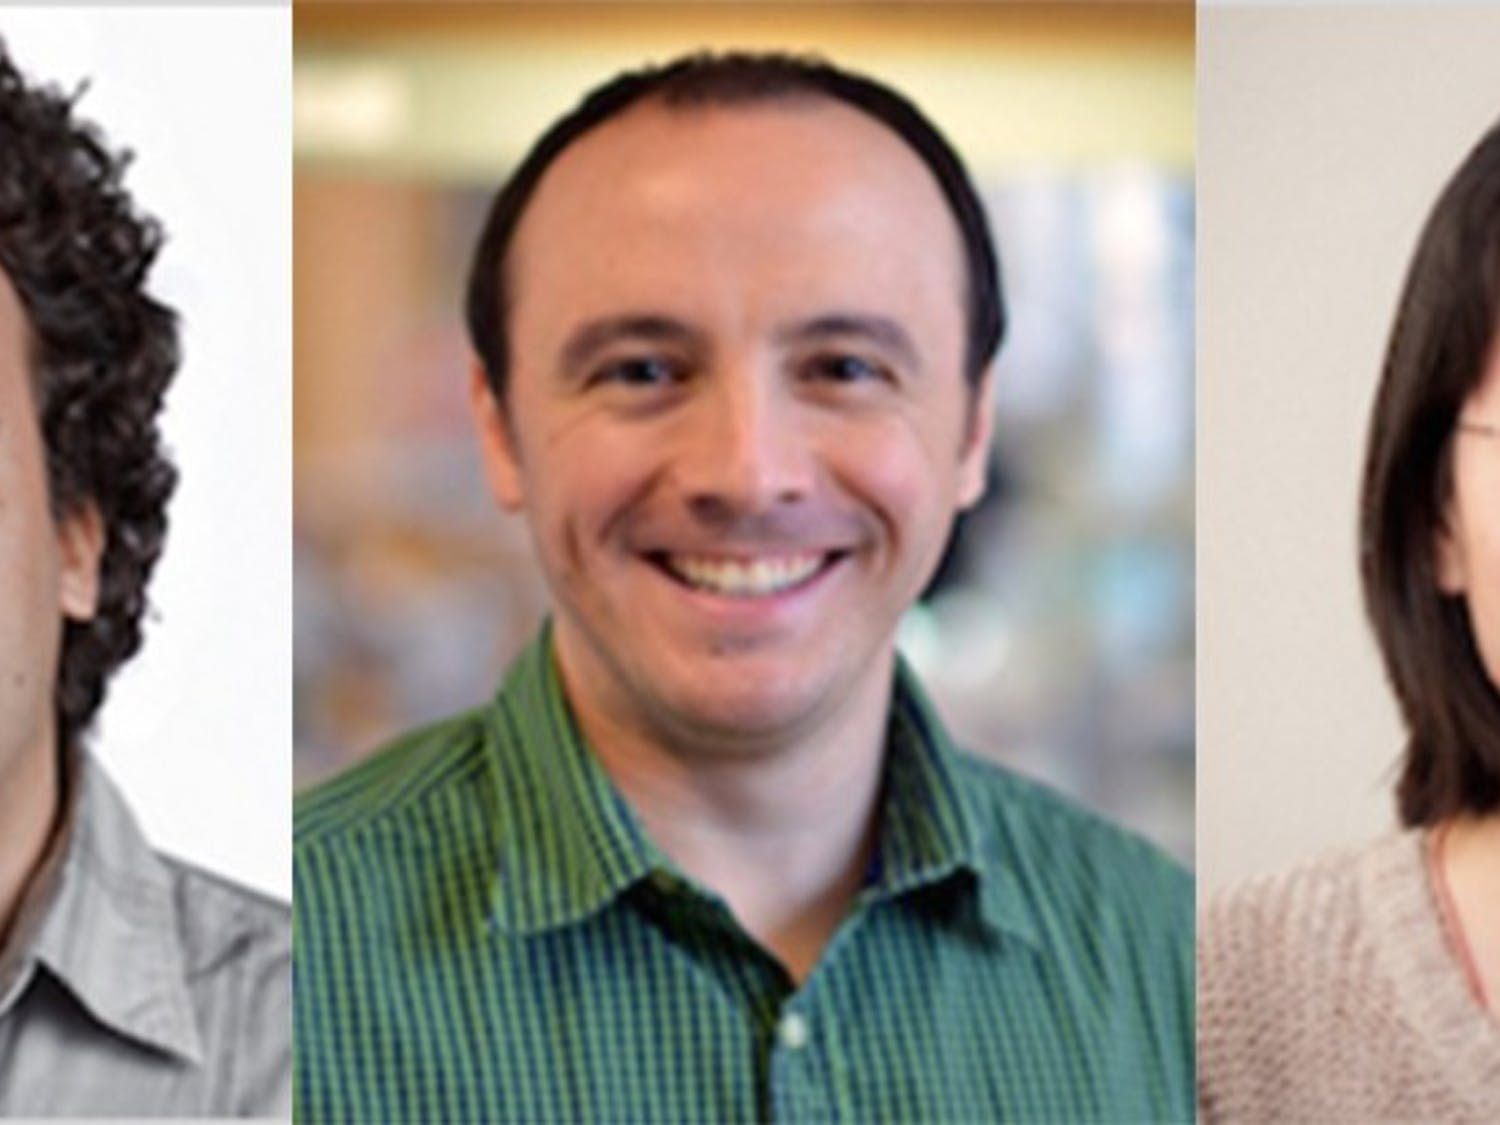 Three UW-Madison professors have been awarded the Sloan Research Fellowship for their outstanding research.